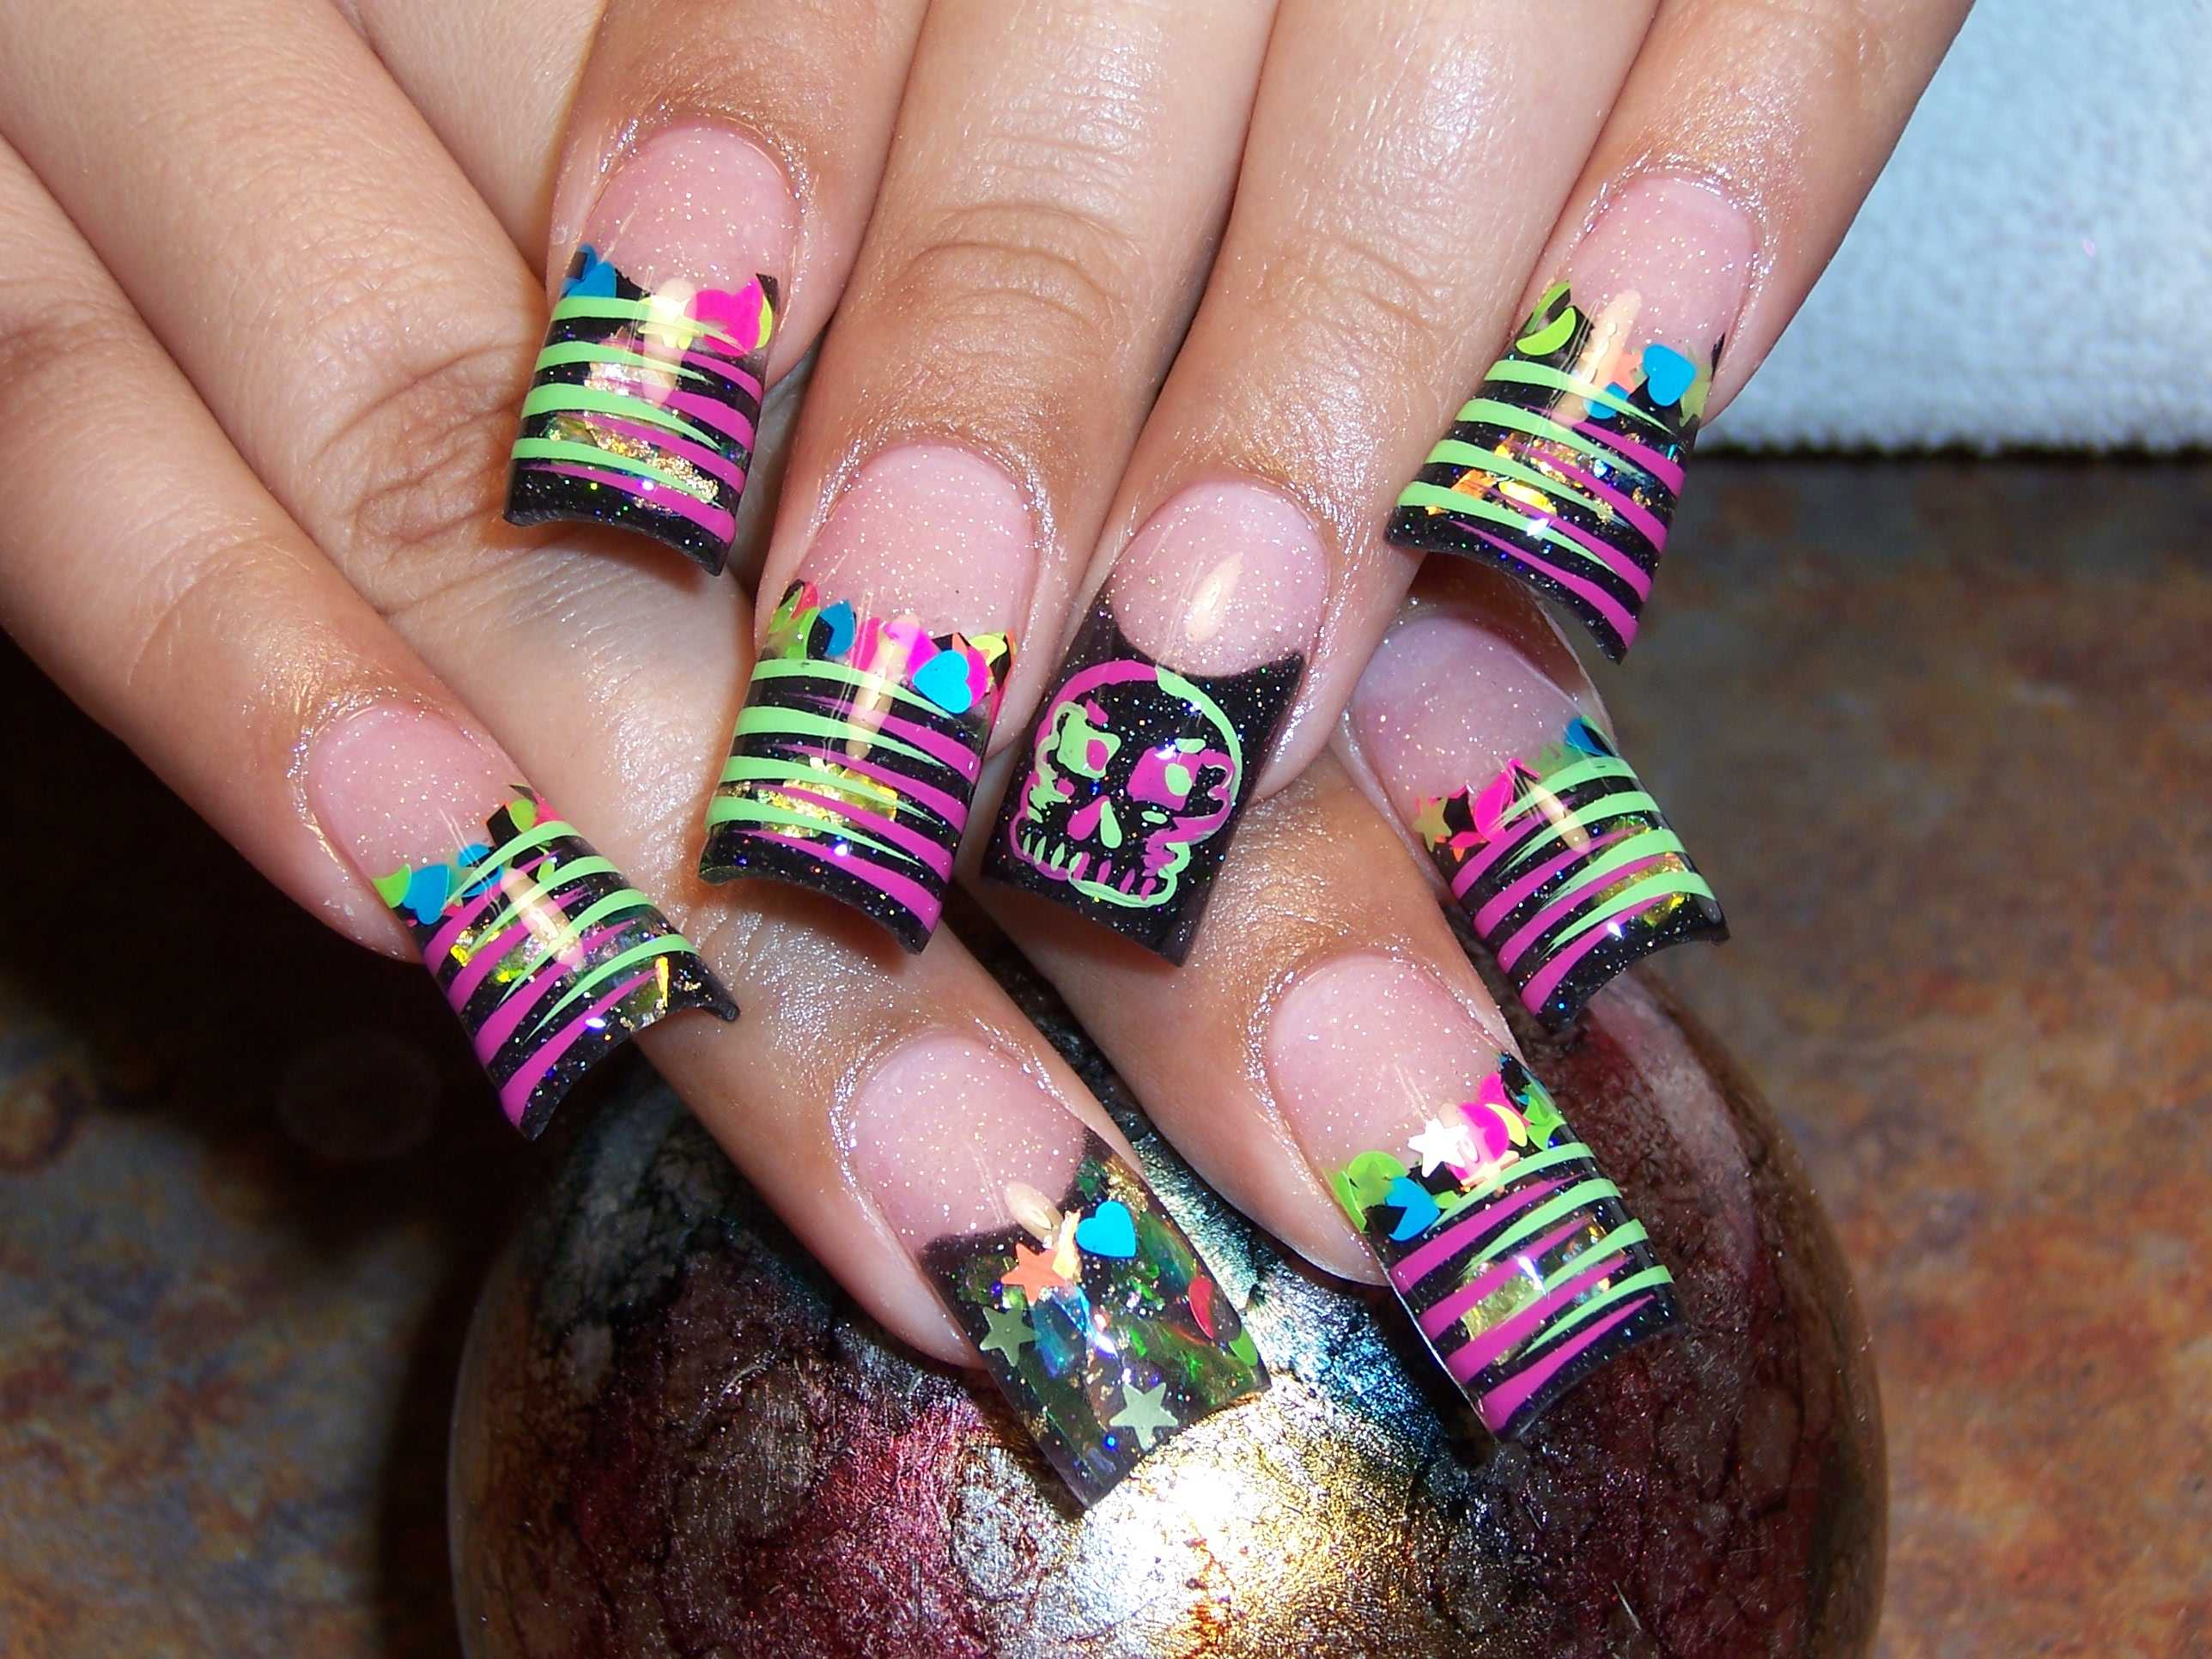 17 Neon Acrylic Nail Designs Ideas Images